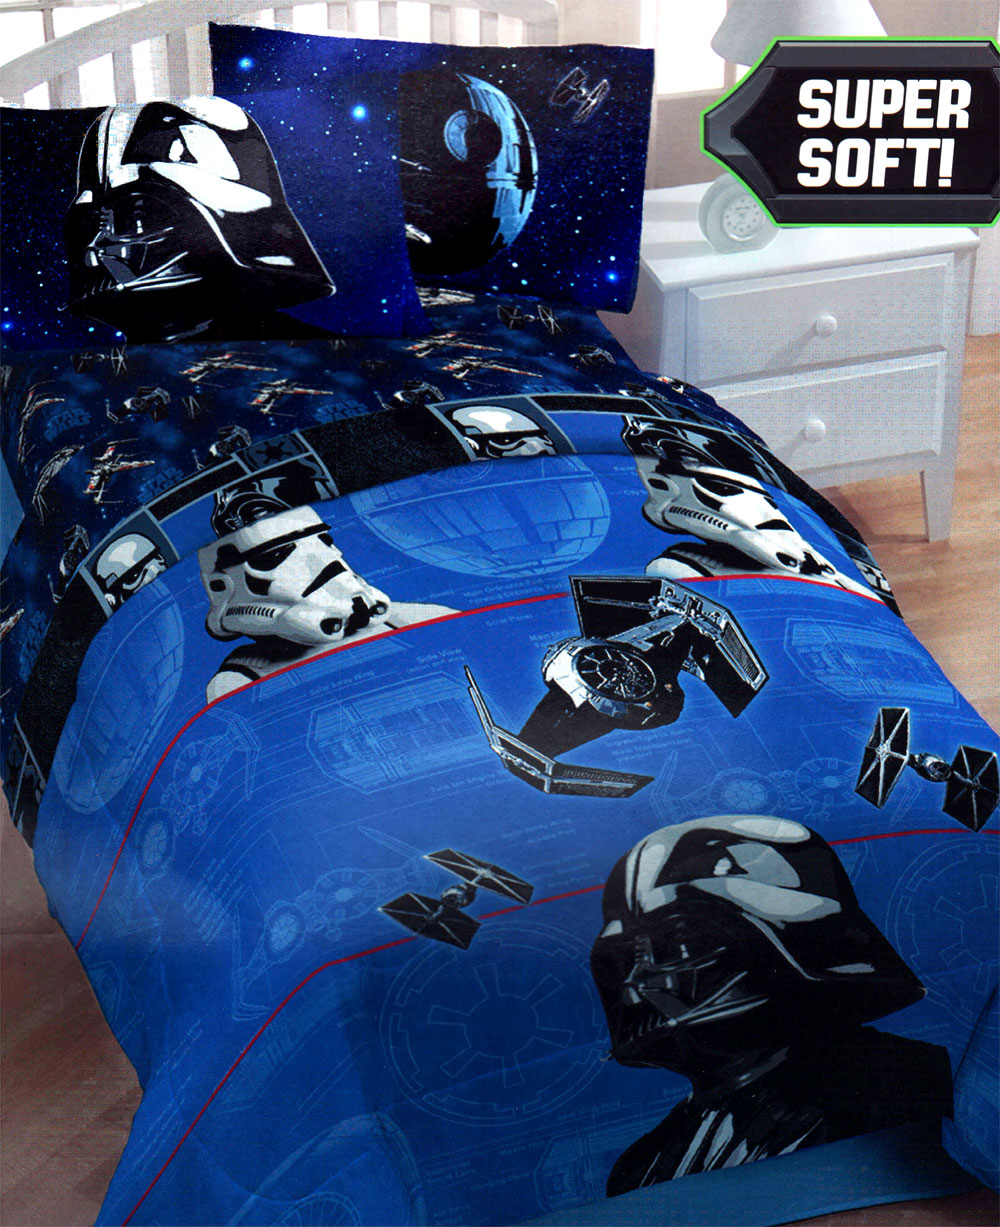 Star Wars Twin Comforter Sets With Sheets Pictures to Pin on ...